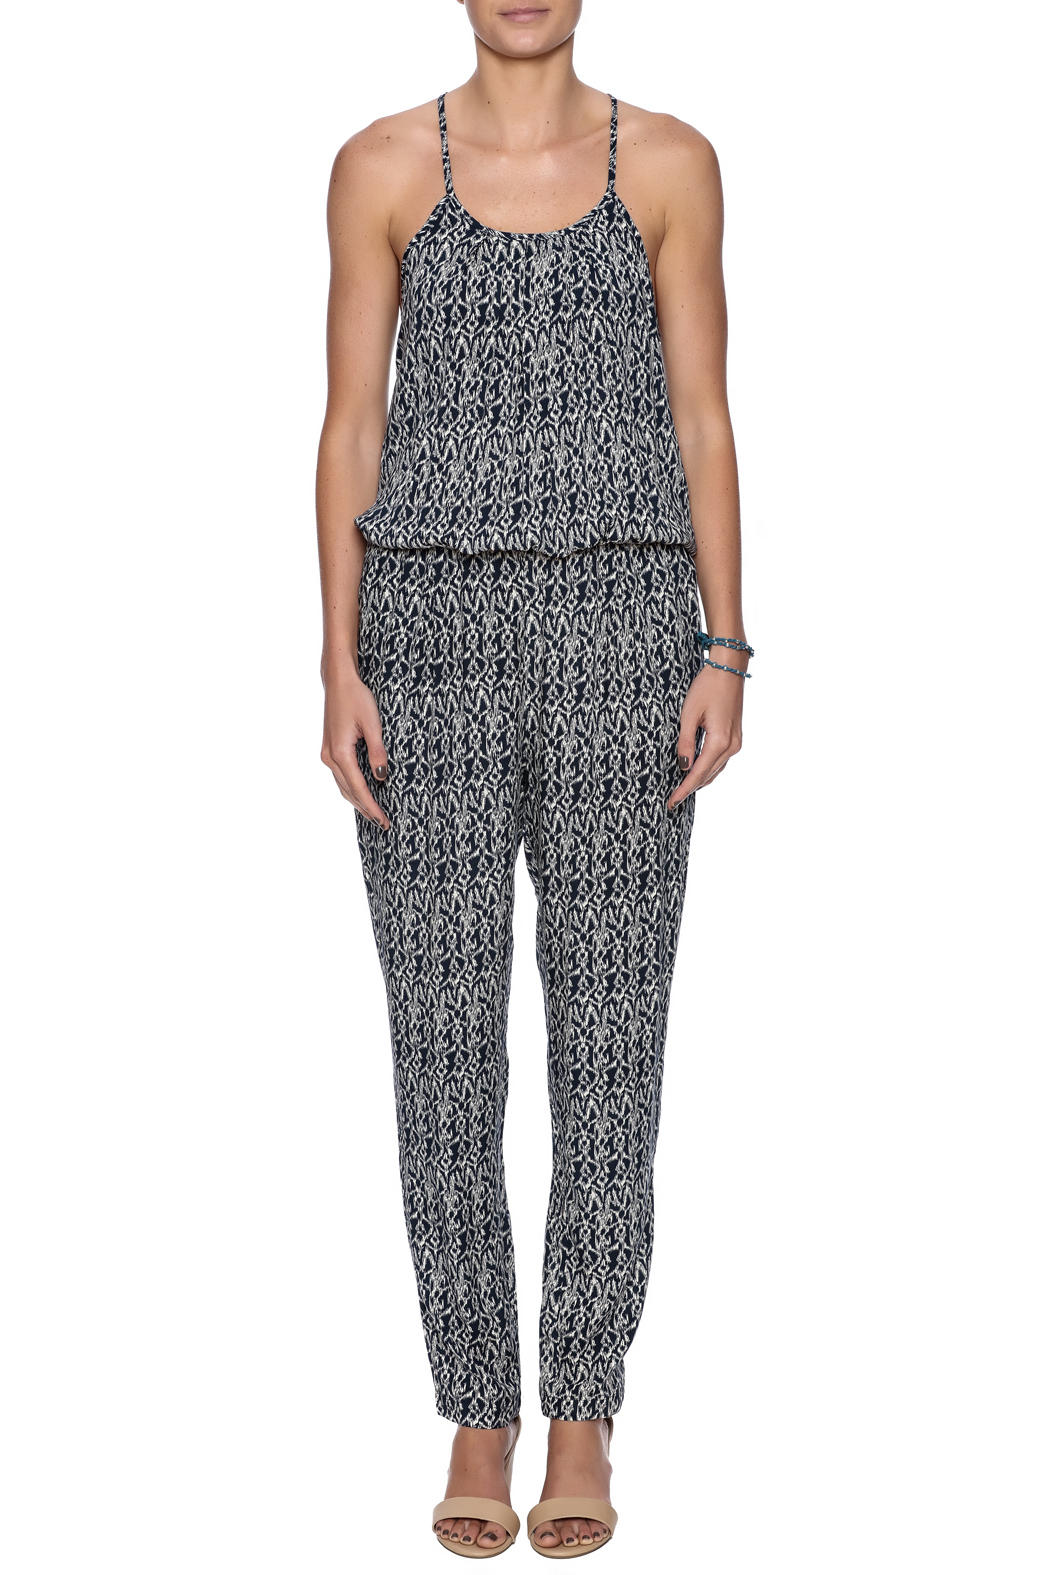 Bishop + Young Jane Printed Jumpsuit - Front Cropped Image